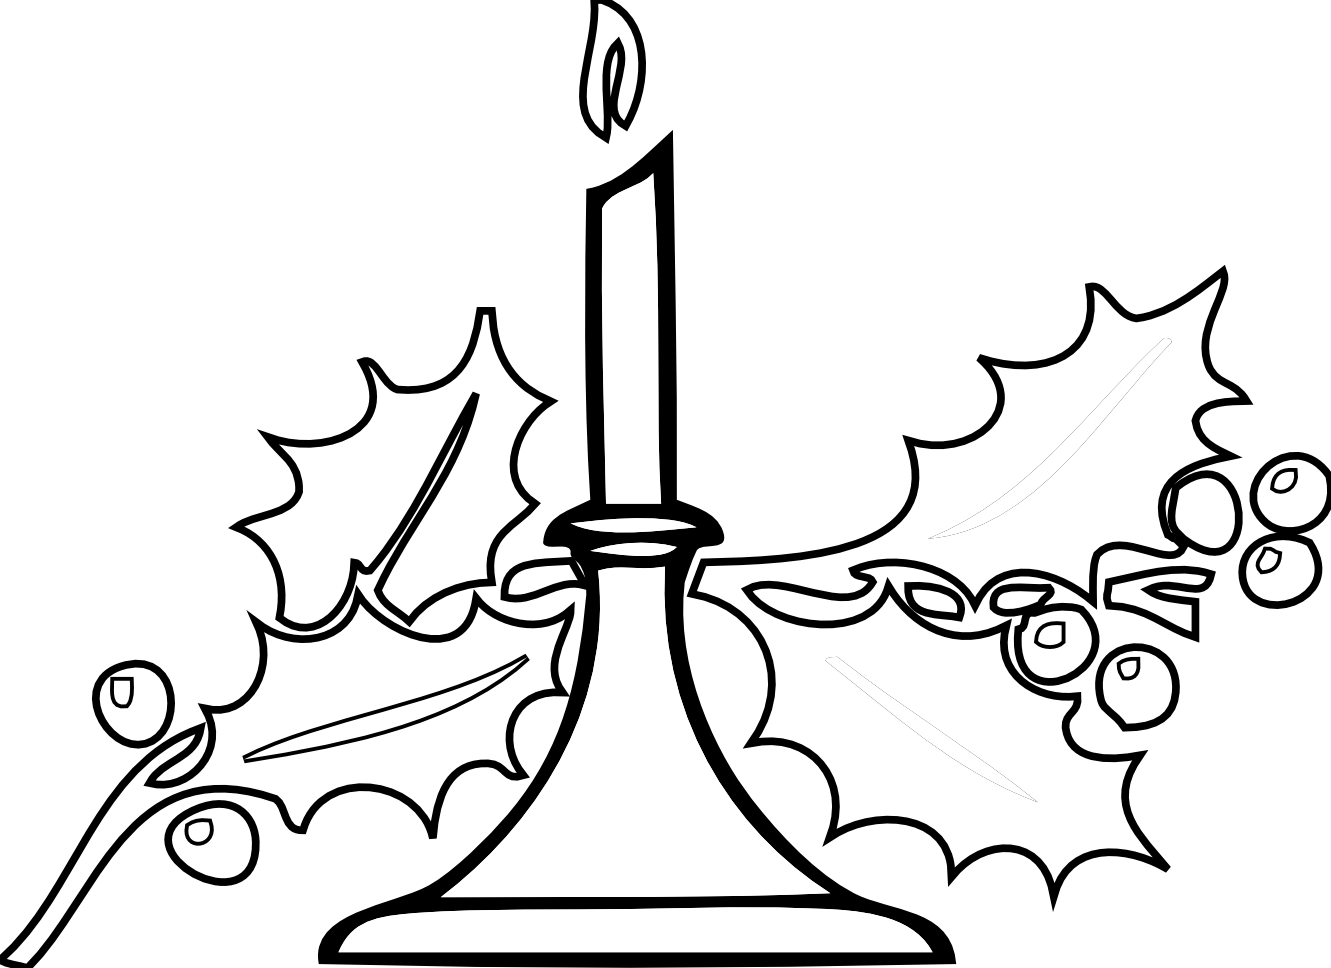 Pinhead drawing black and white. Candle flame clipart panda